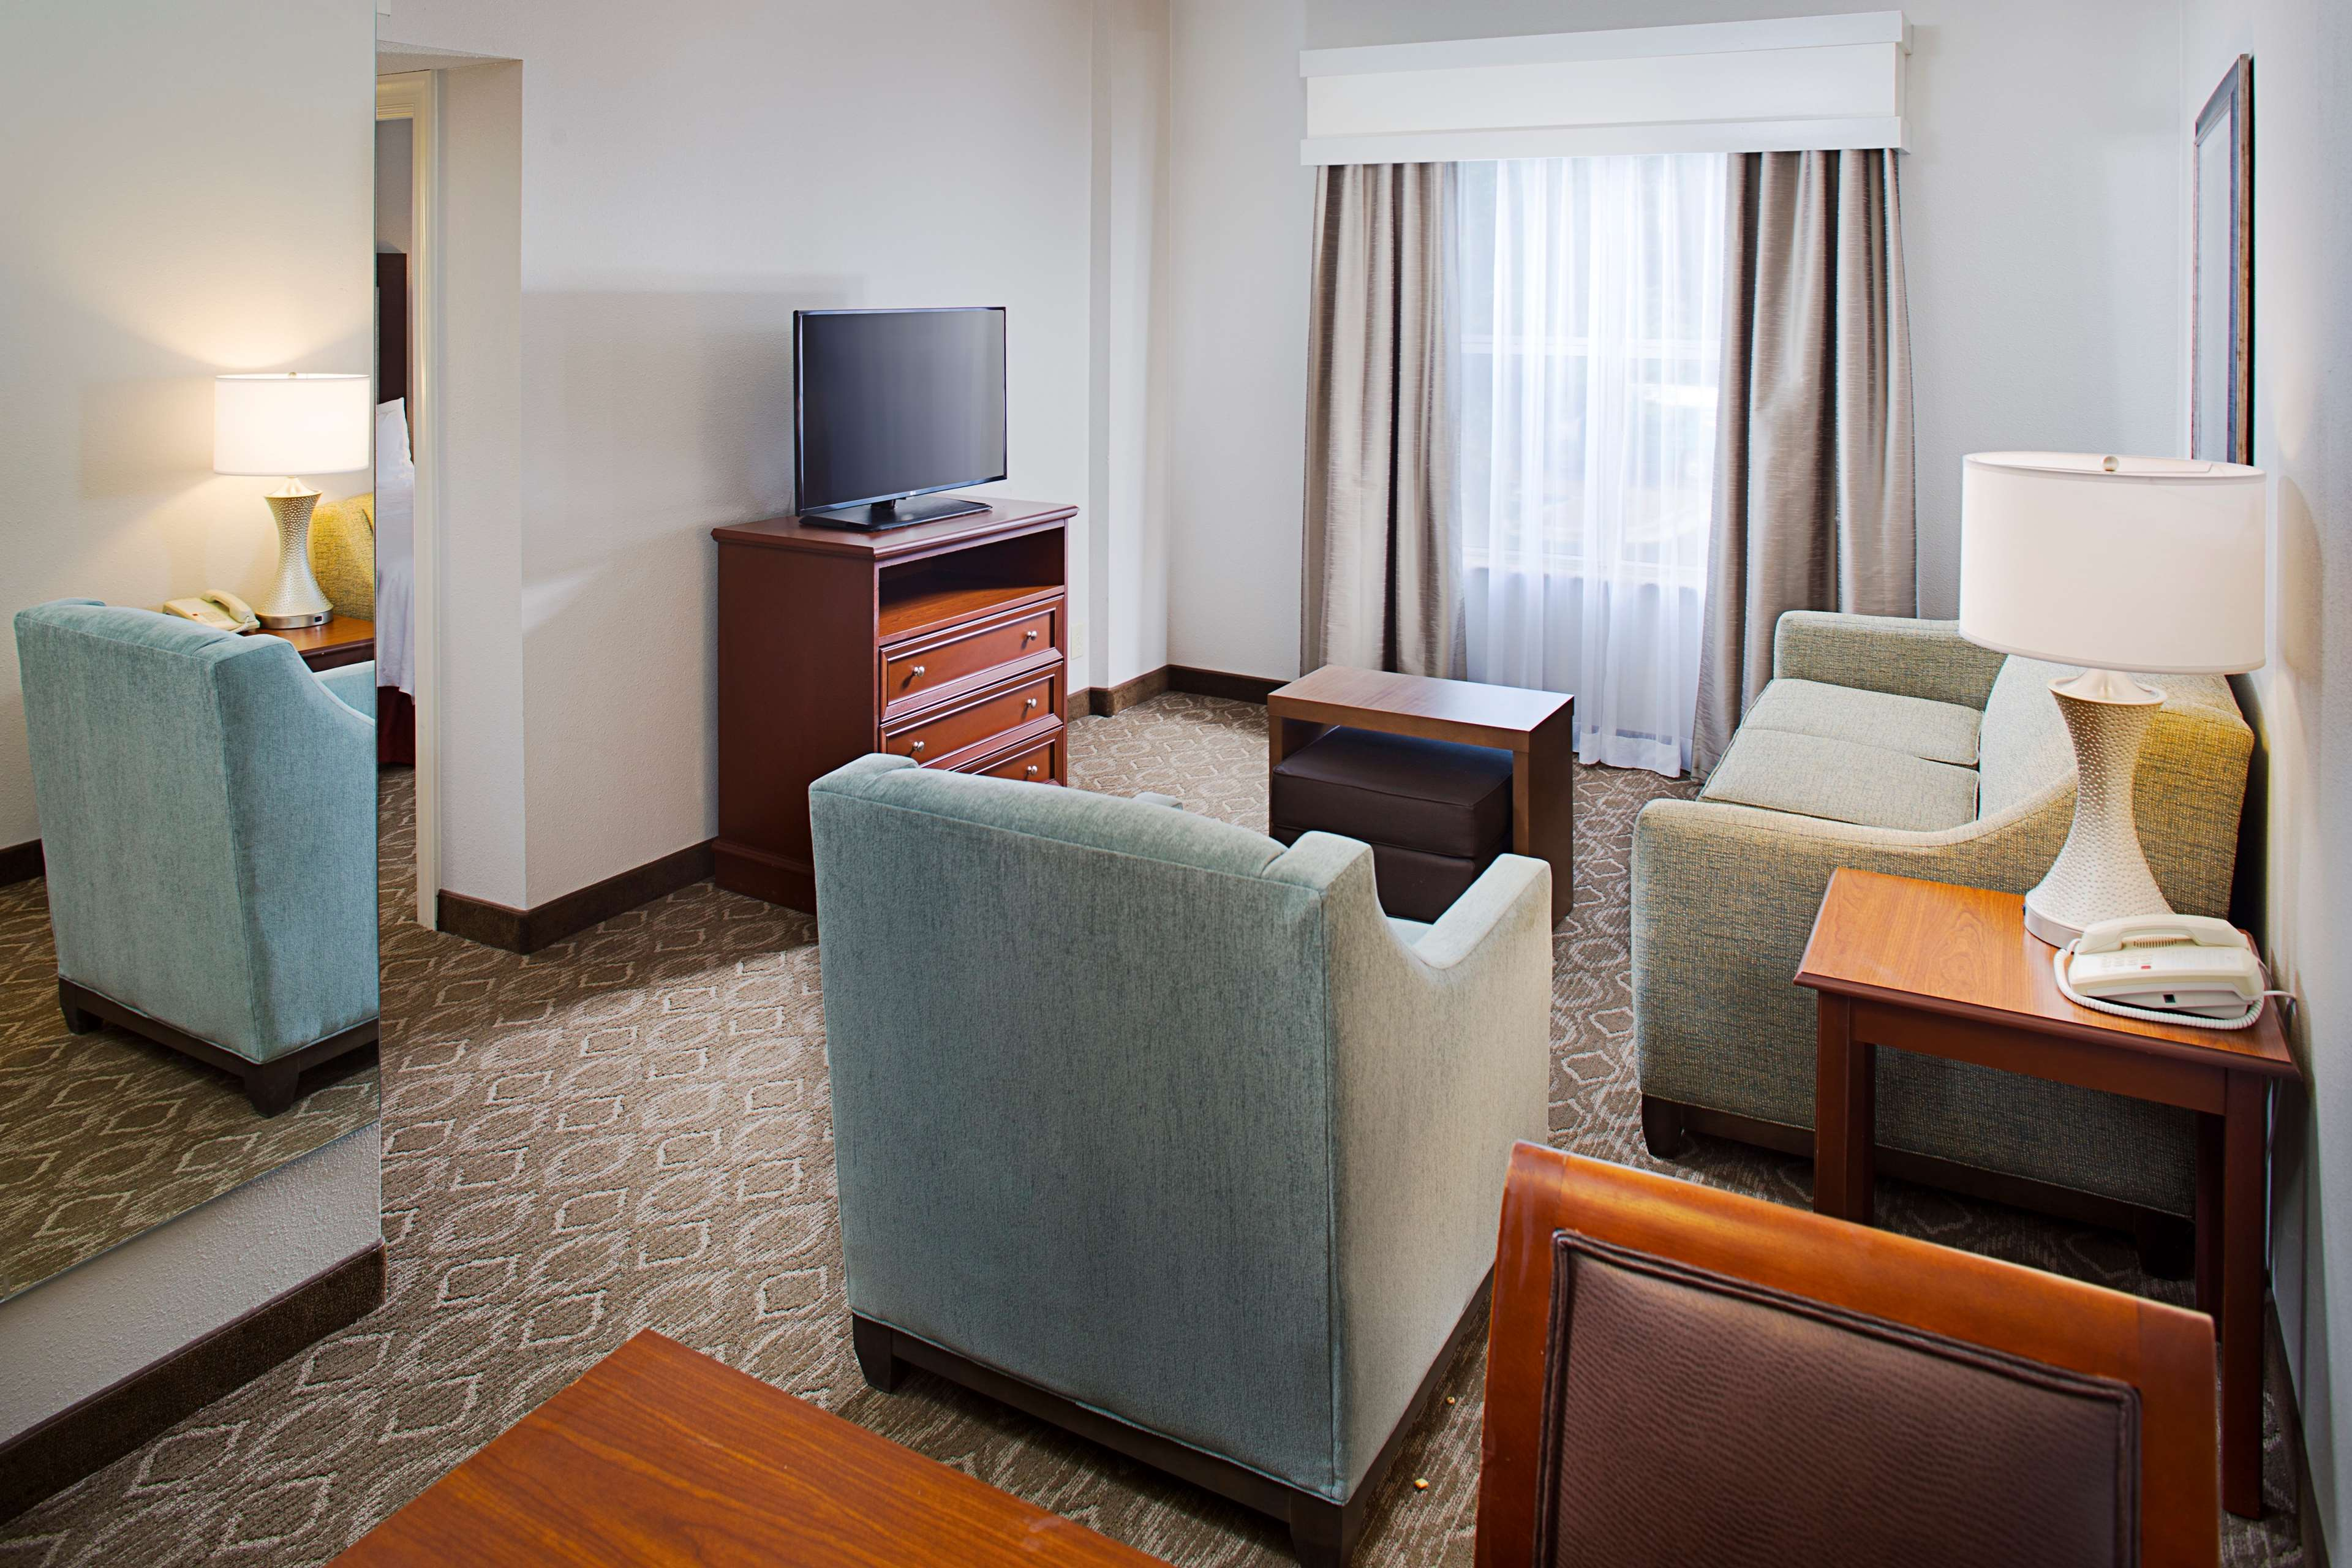 Homewood Suites by Hilton Raleigh/Cary image 34